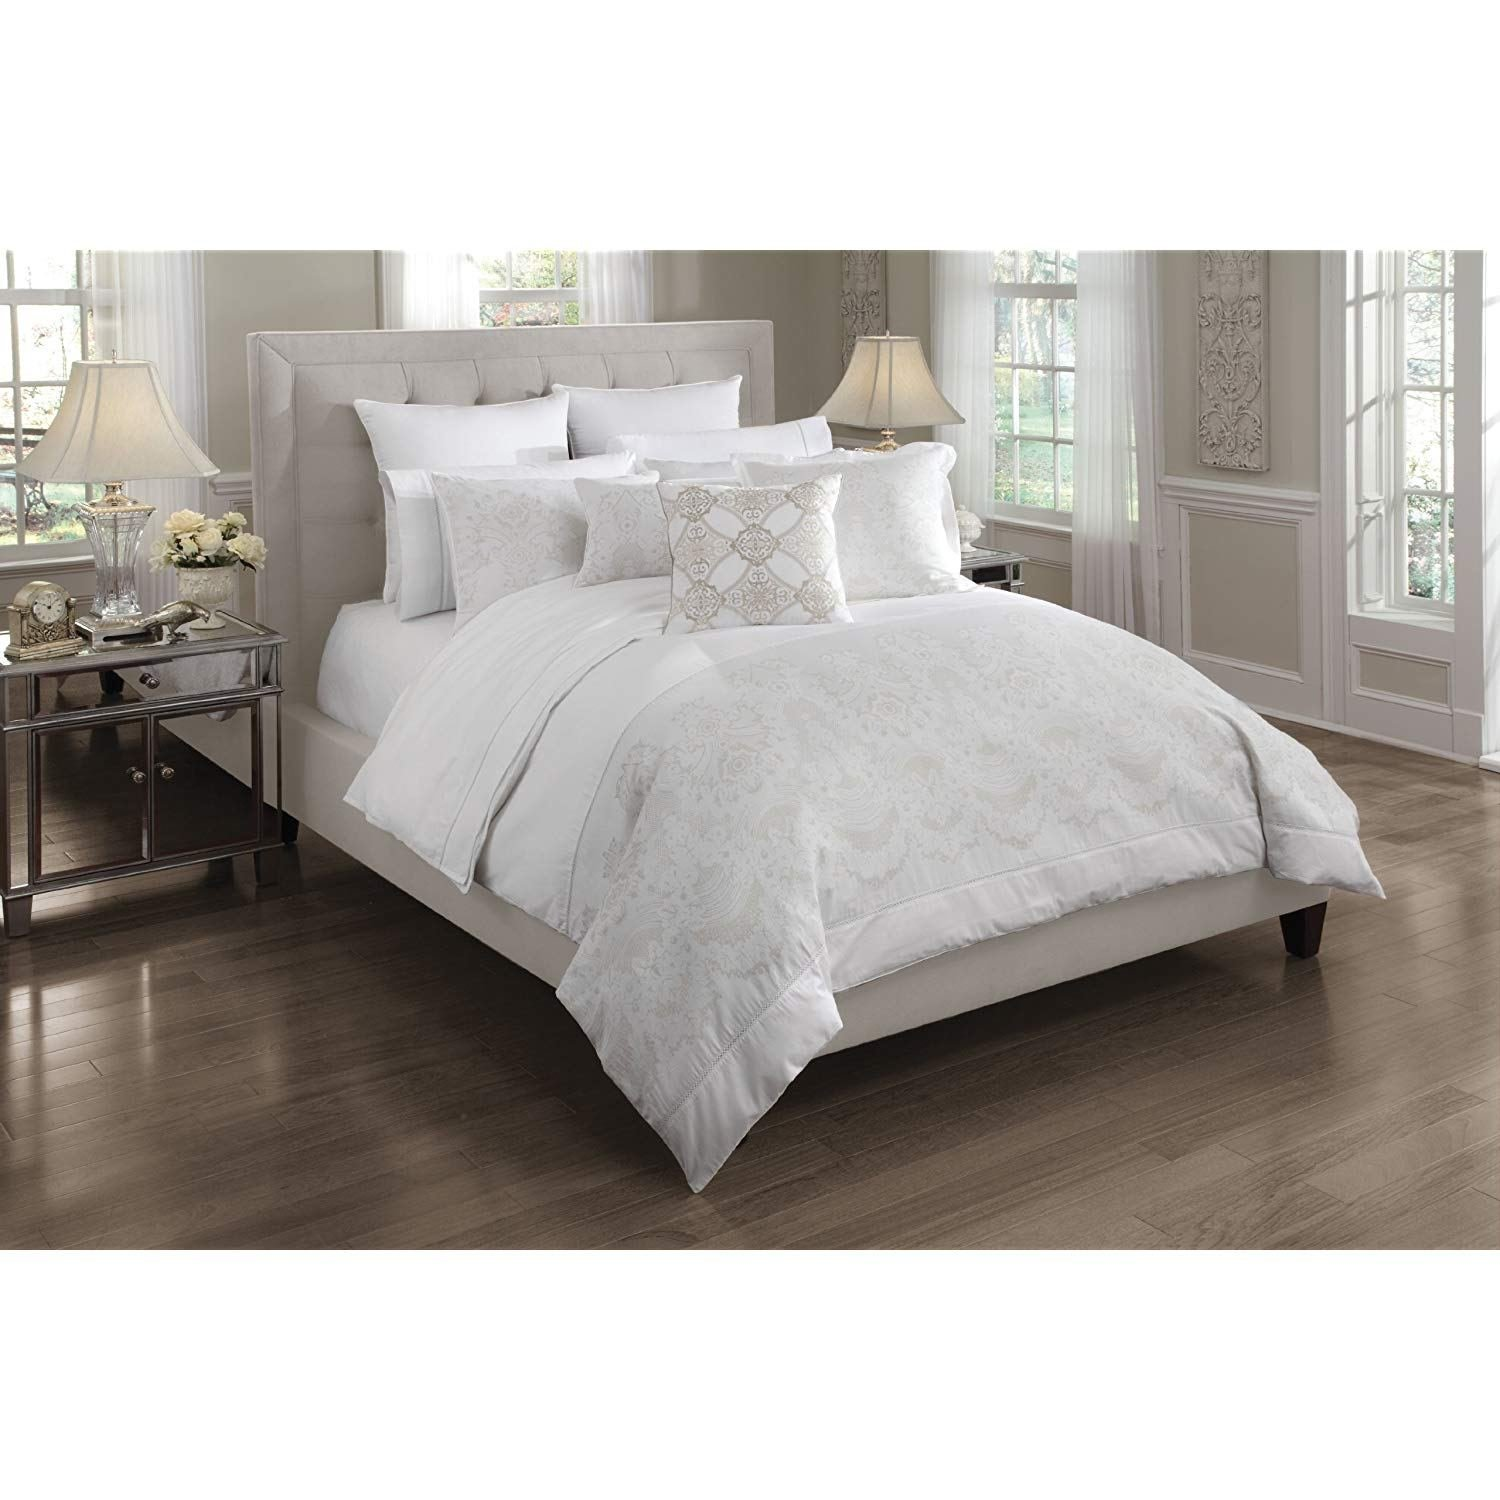 Best All White Bed Set 28 Images Bedding White Feather Down With Pictures